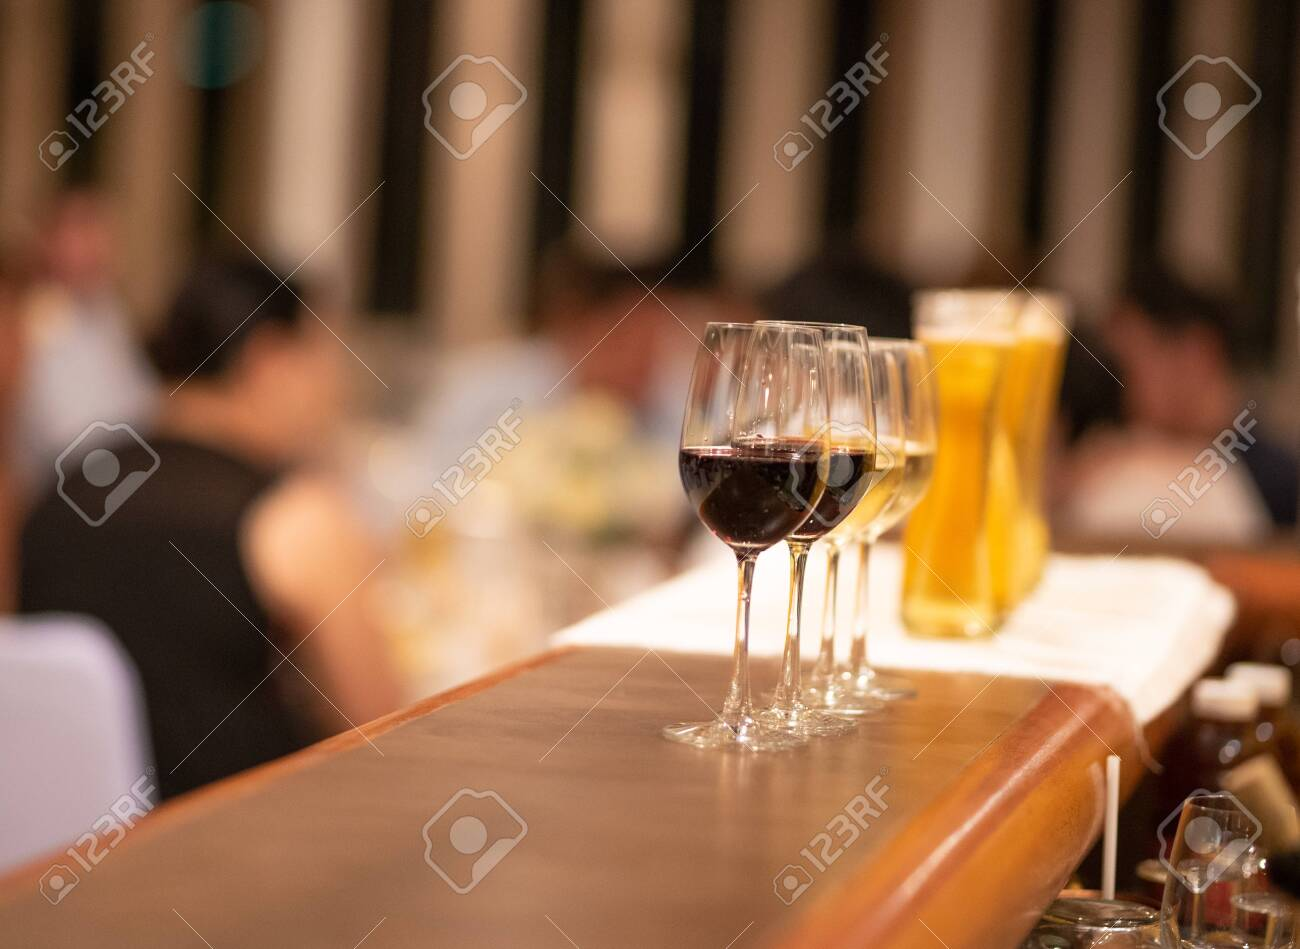 Group Of Cold Beer Glass And Wine On Bar Counter And Free Space Stock Photo Picture And Royalty Free Image Image 142620968